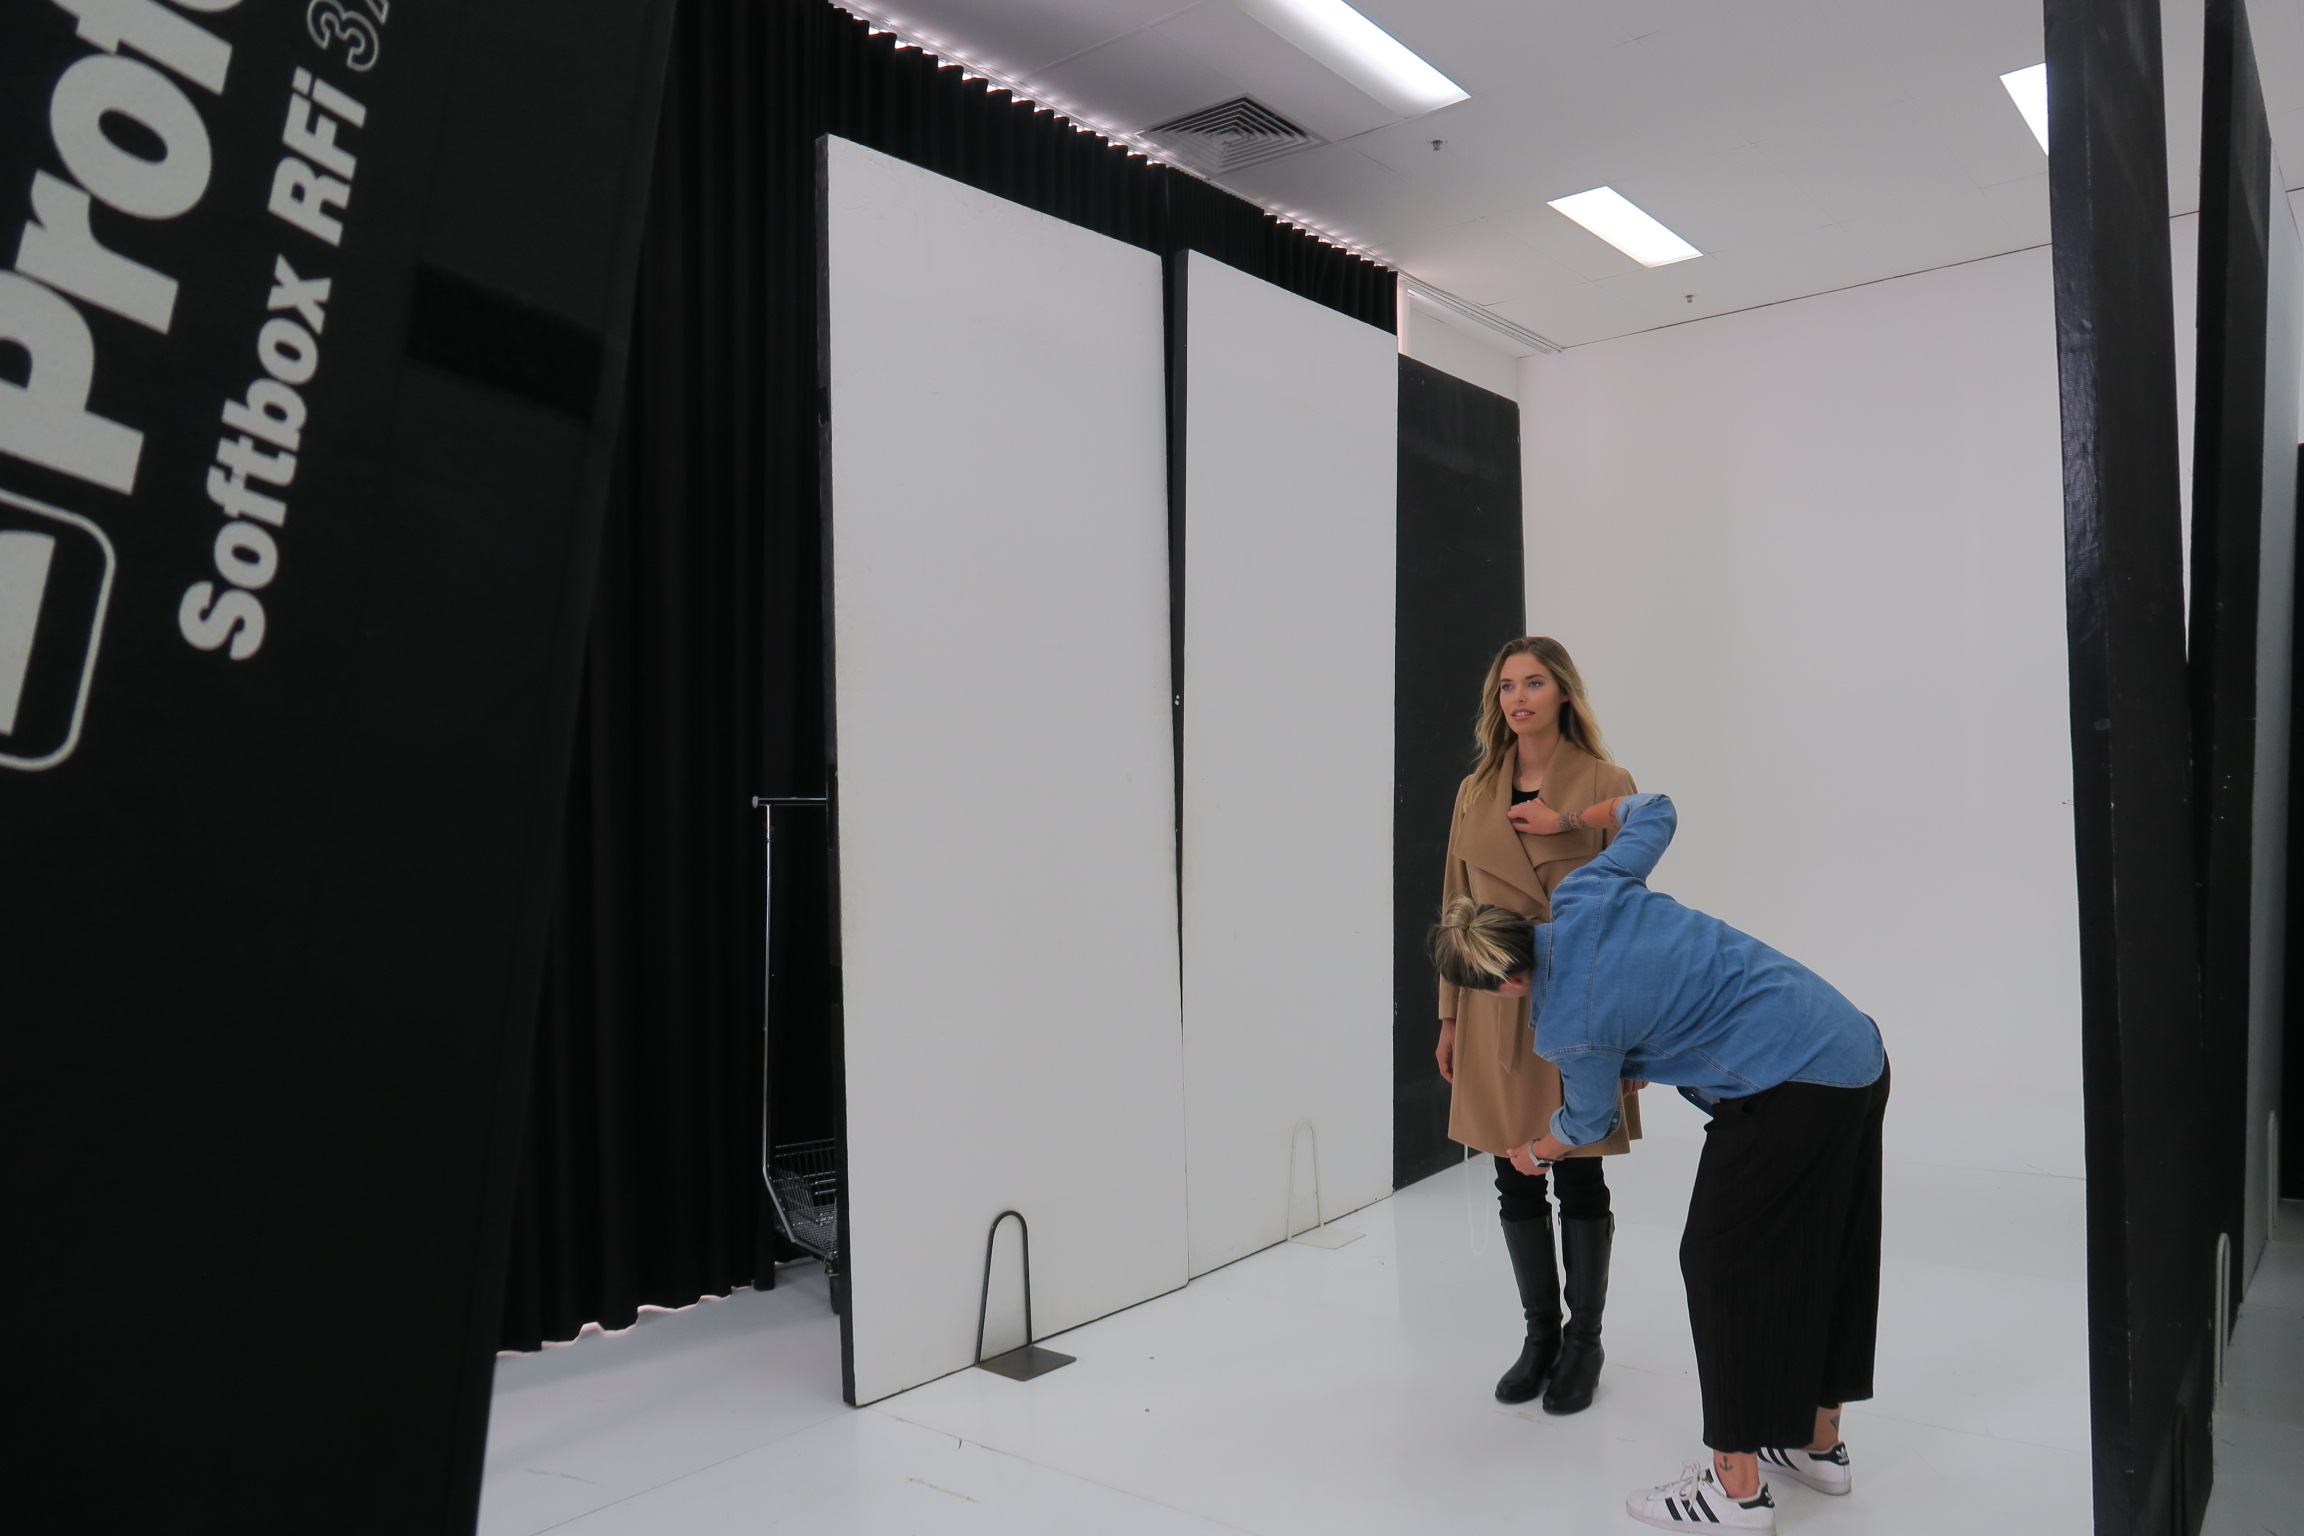 phoebe being styled on set.JPG